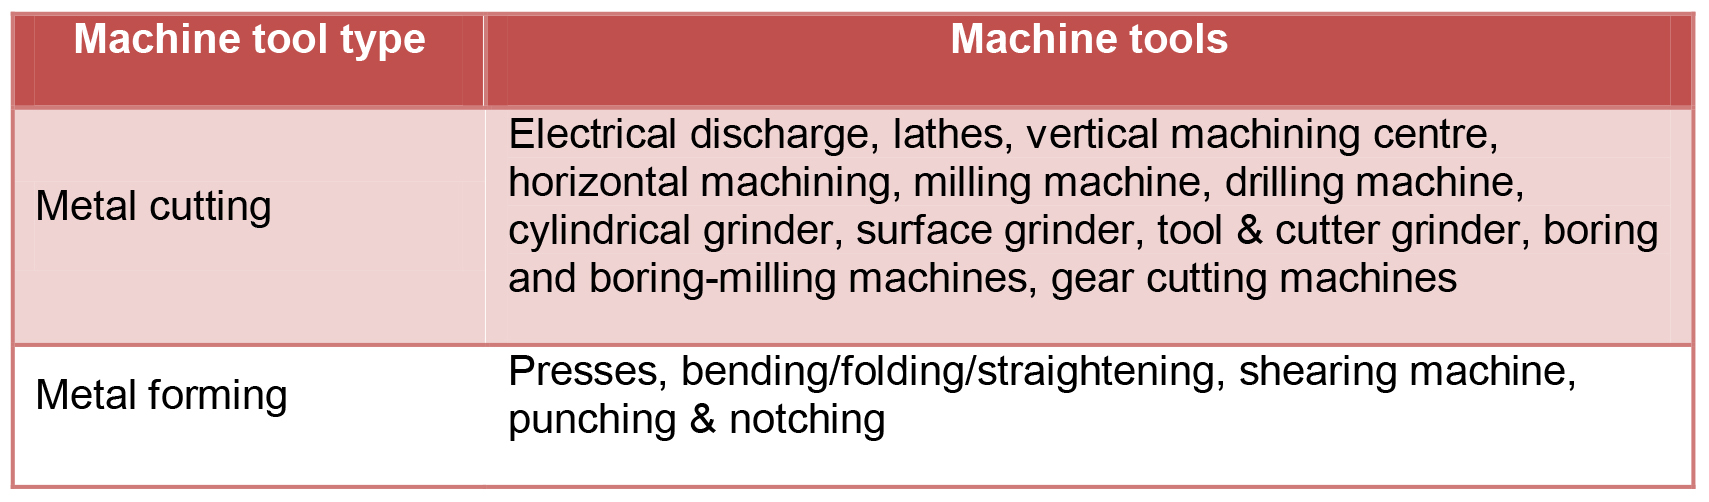 Machine tools classification